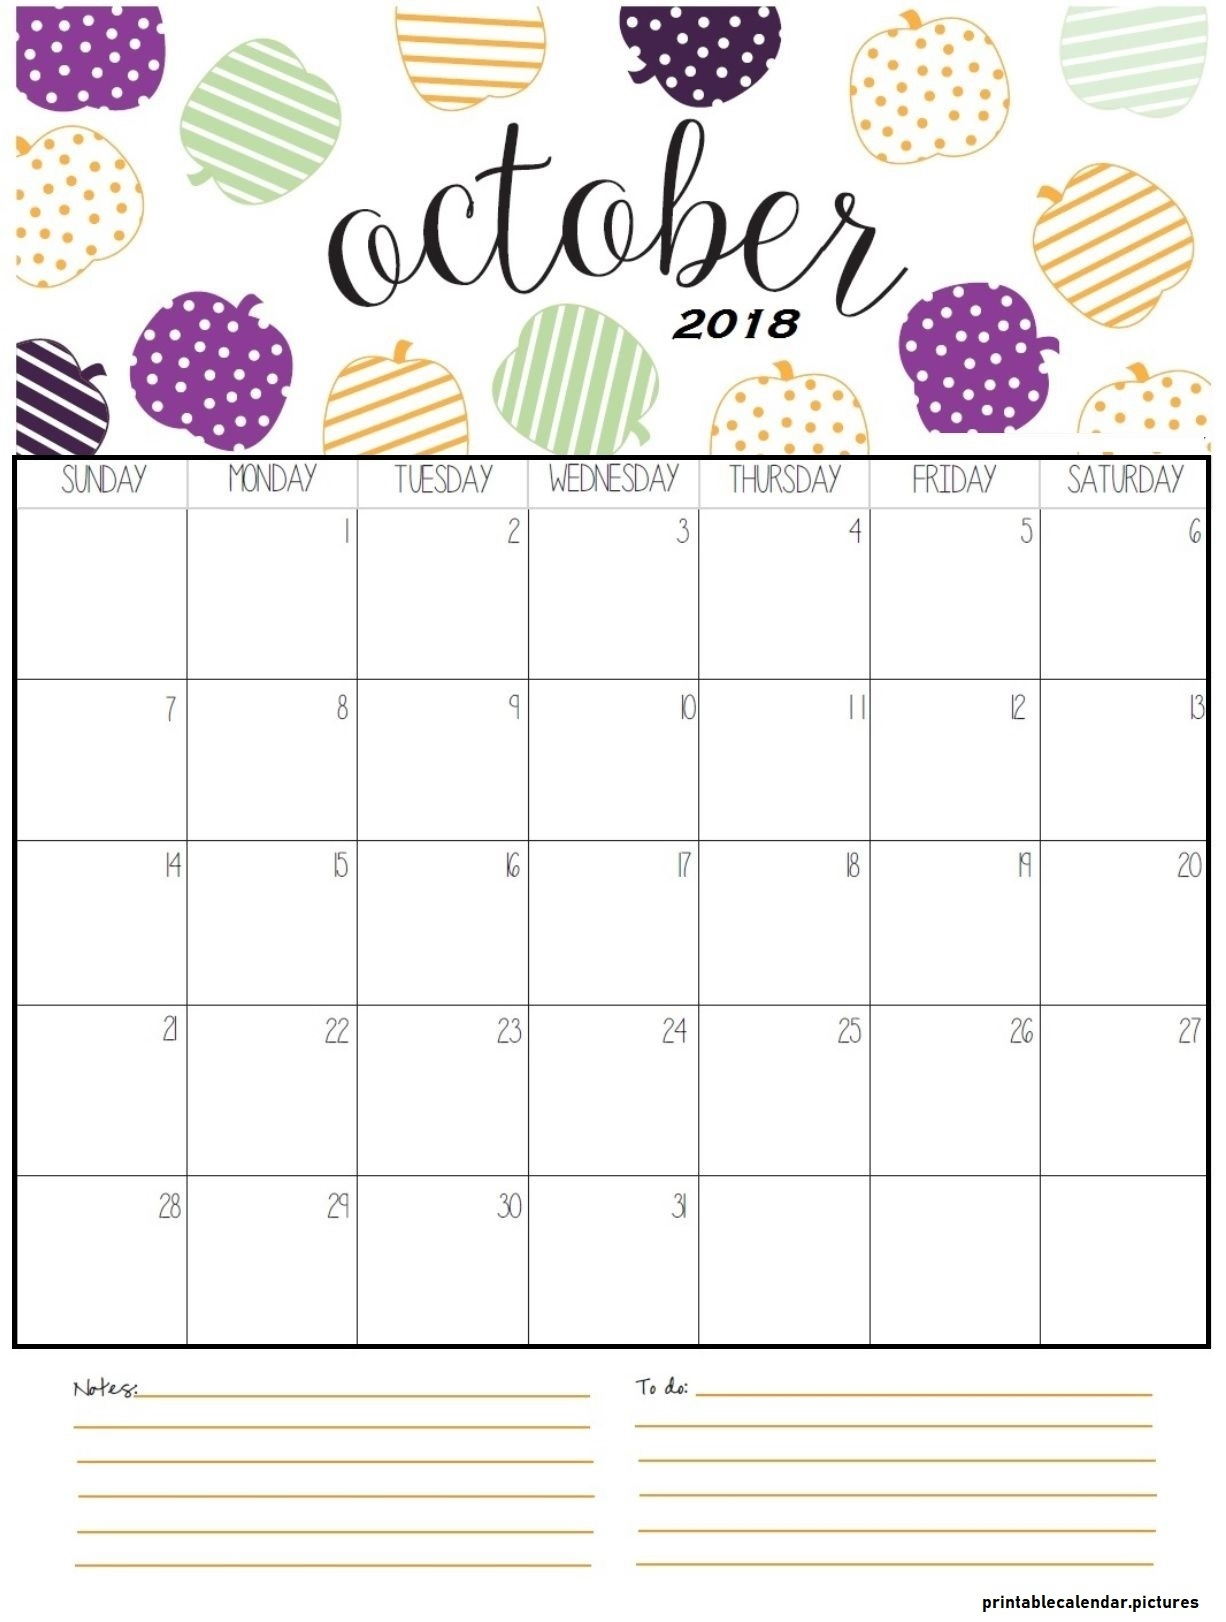 free 2018 october calendar template word printable calendar Free October 2018 Calendar Word Document erdferdf